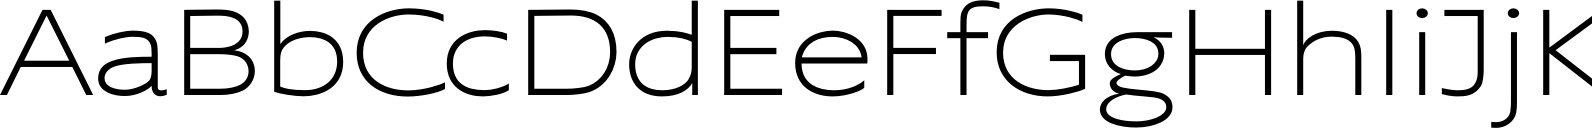 Supra ExtraLight Extended Font